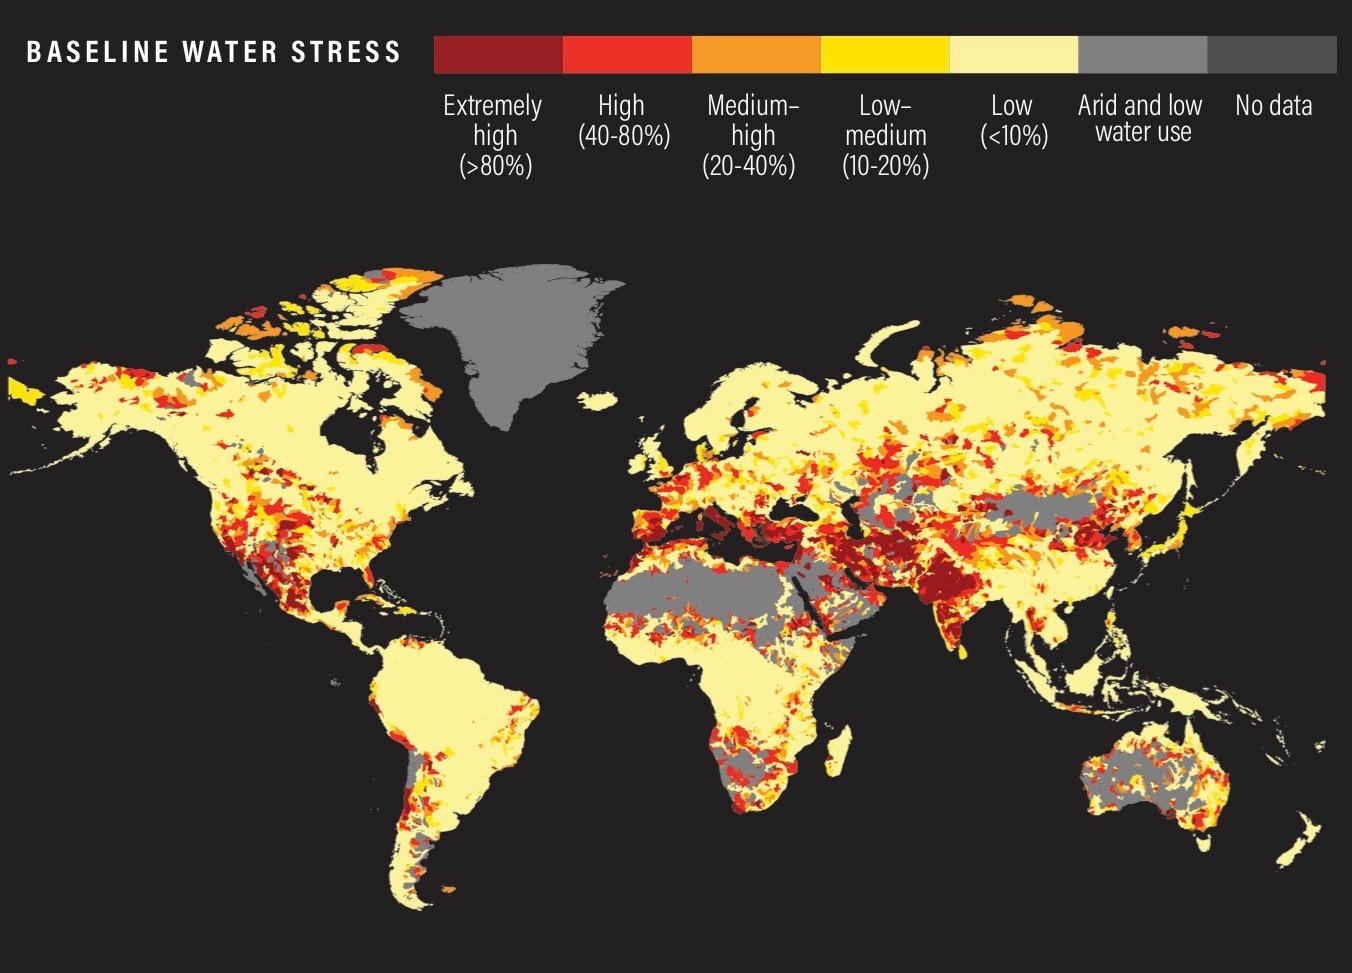 Global Map of Baseline Water Stress